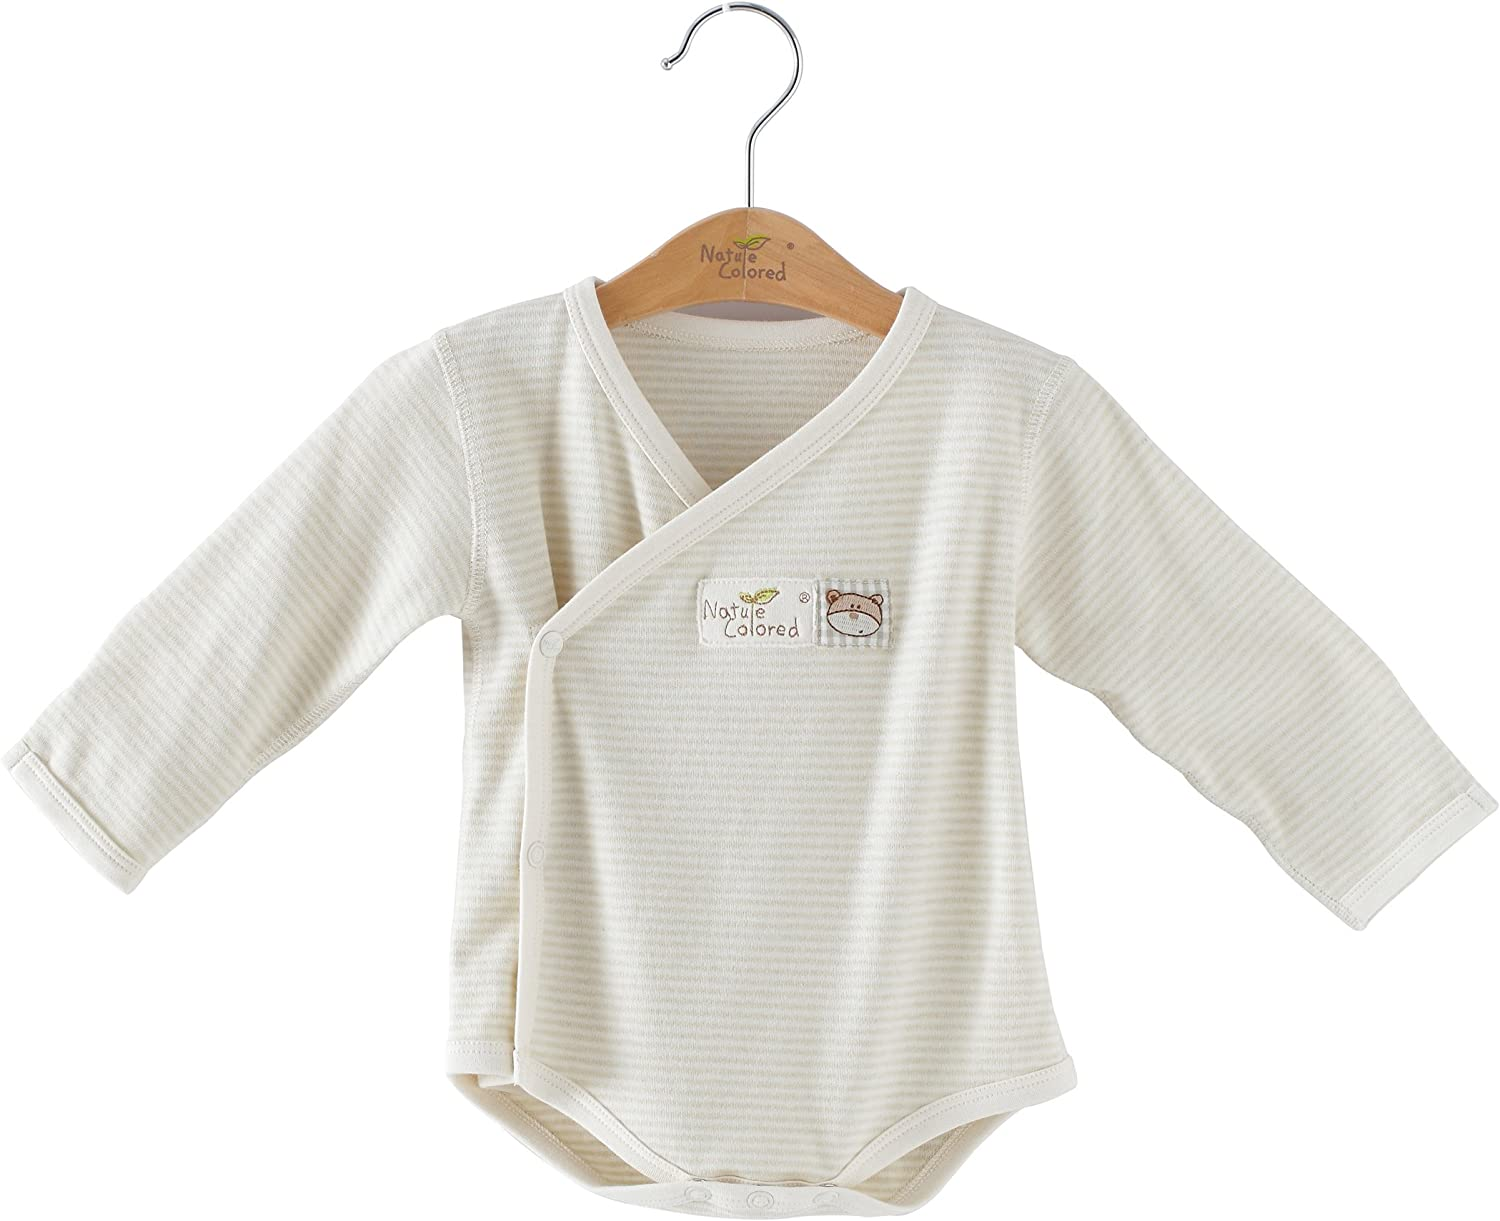 New Arrival!Naturecolored baby bodysuit with 100/% naturally colored cotton